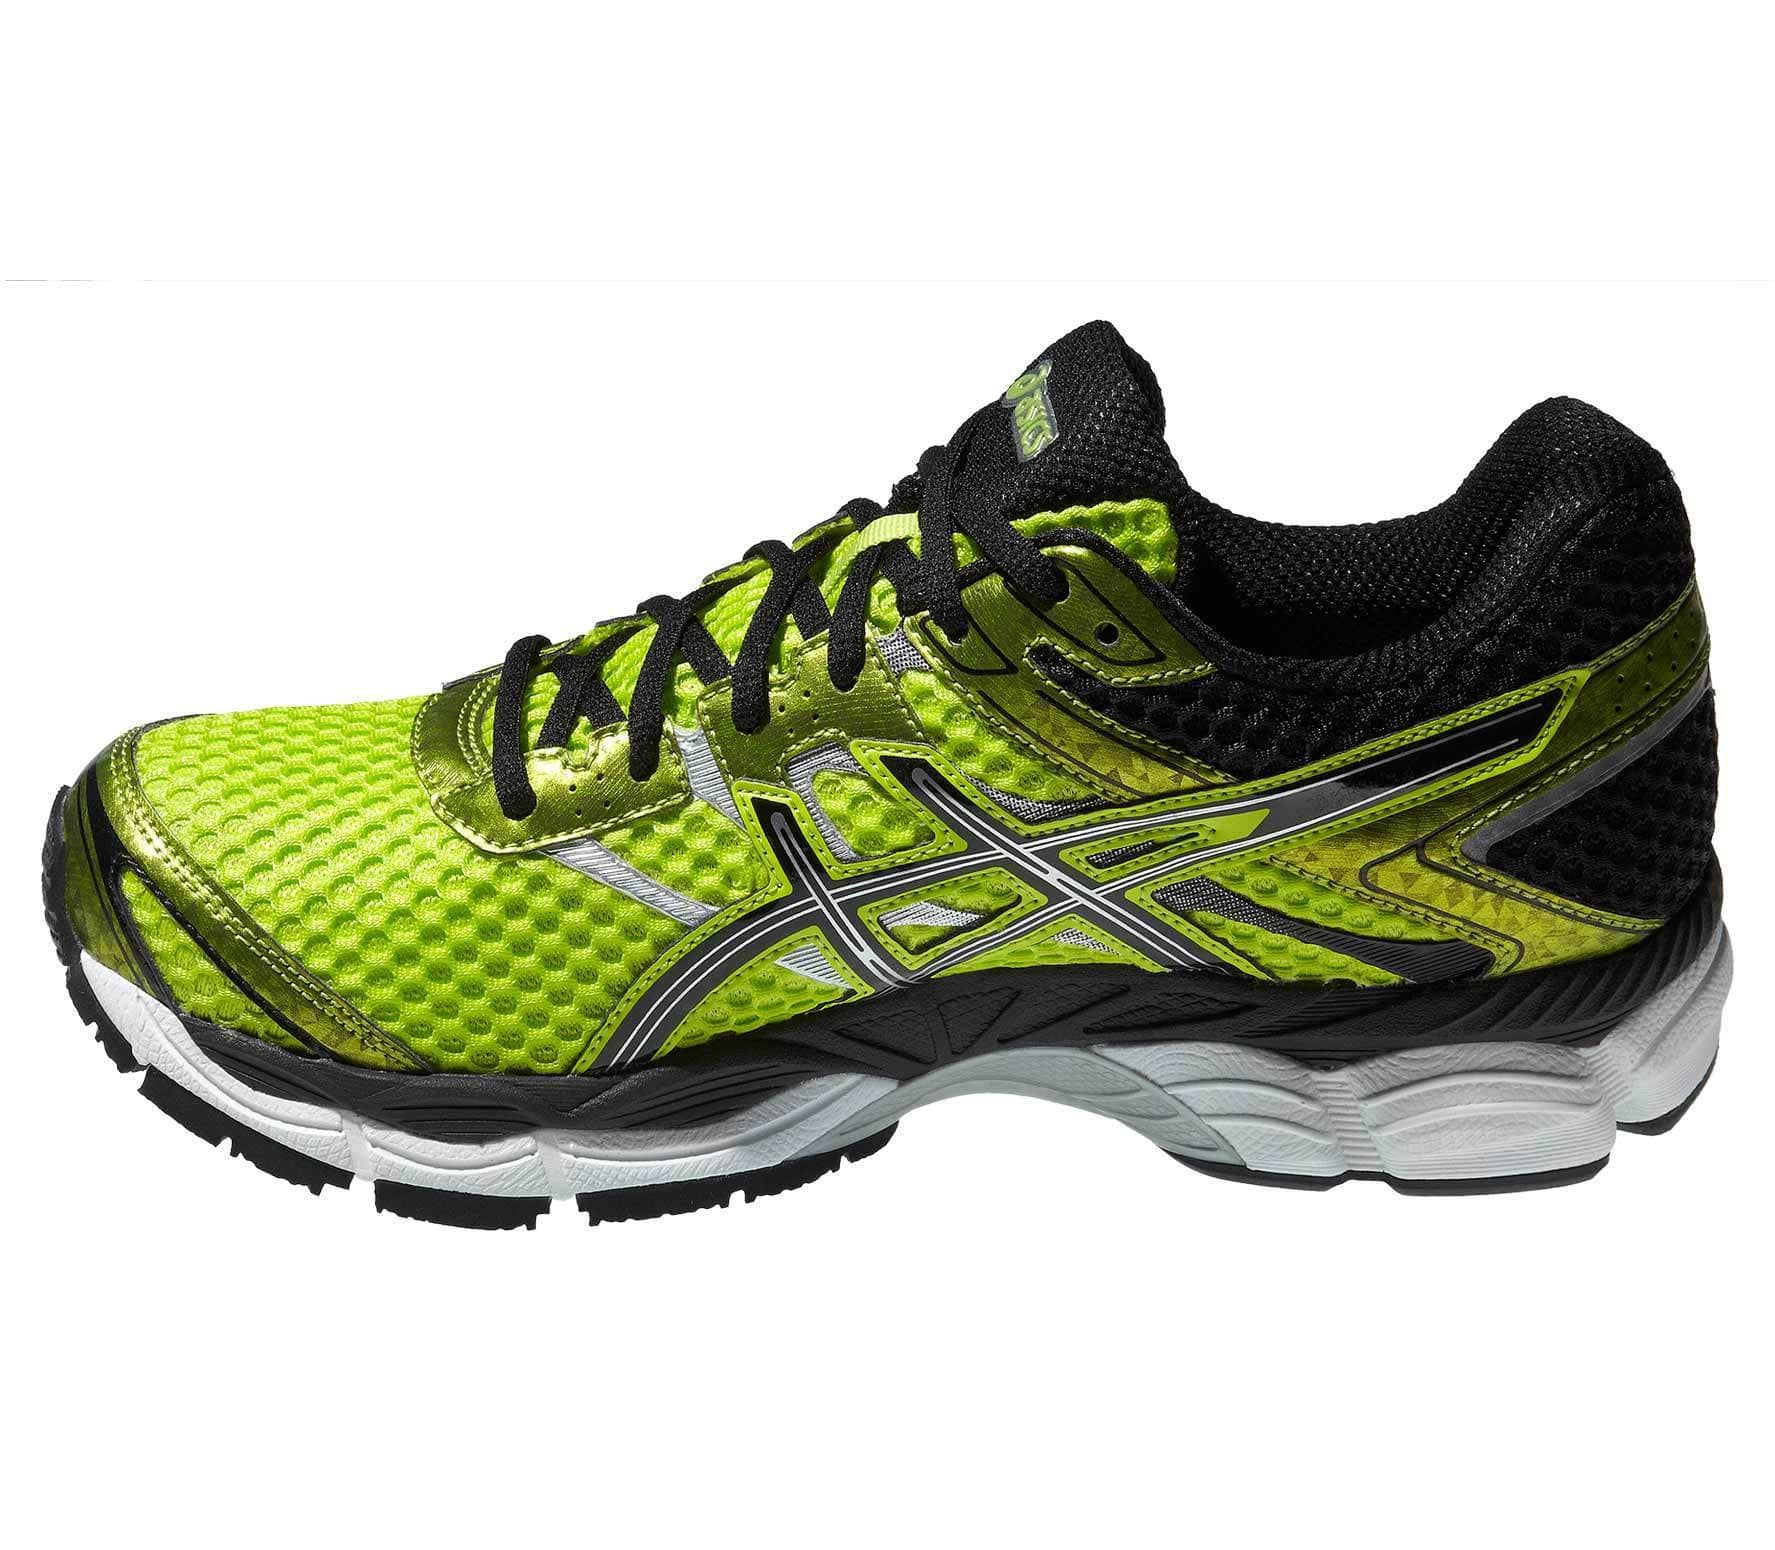 Asics Most Cushioned Running Shoes